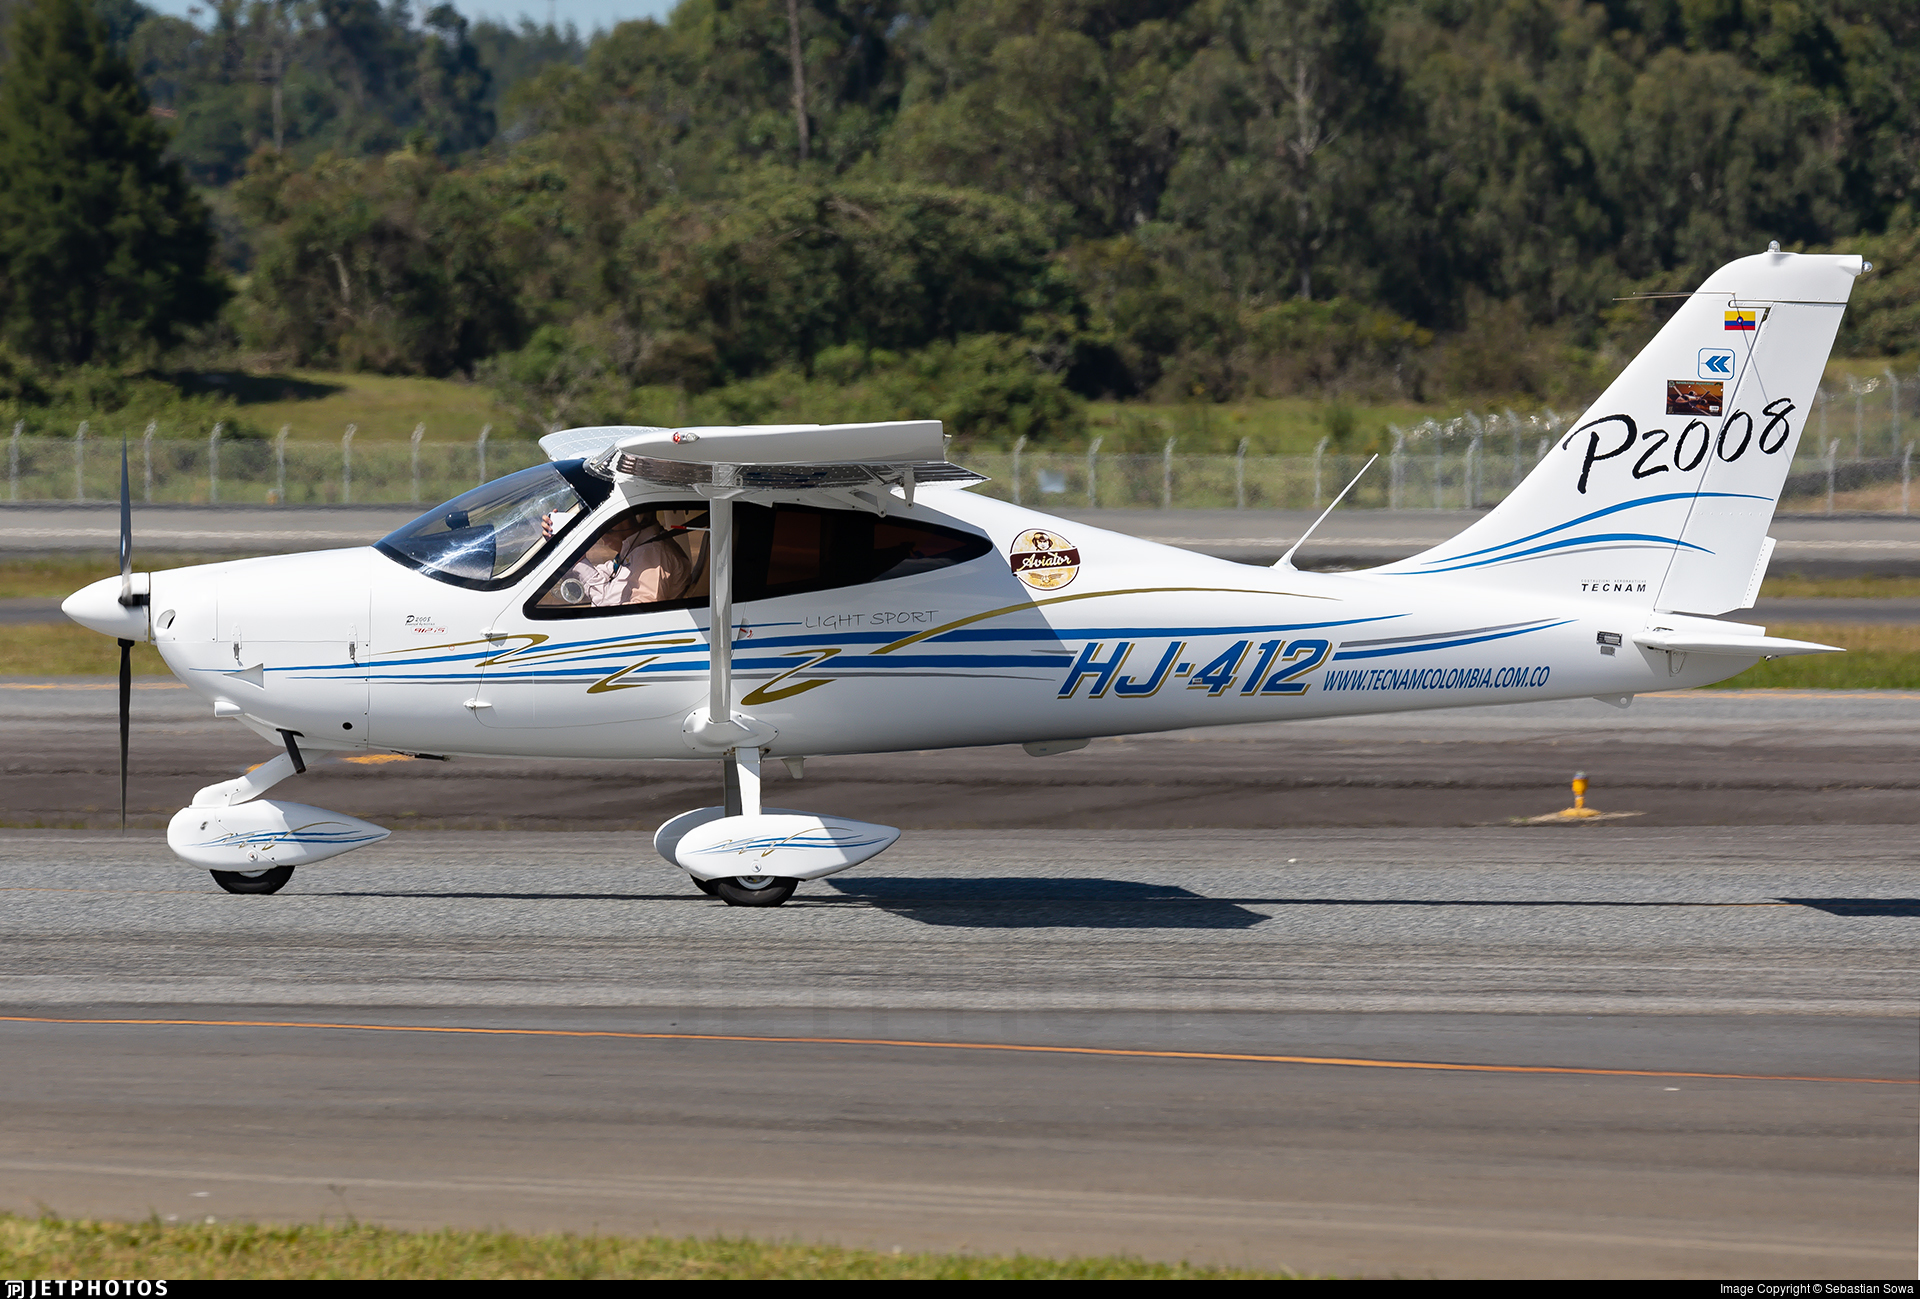 HJ-412 - Tecnam P2008 - Private